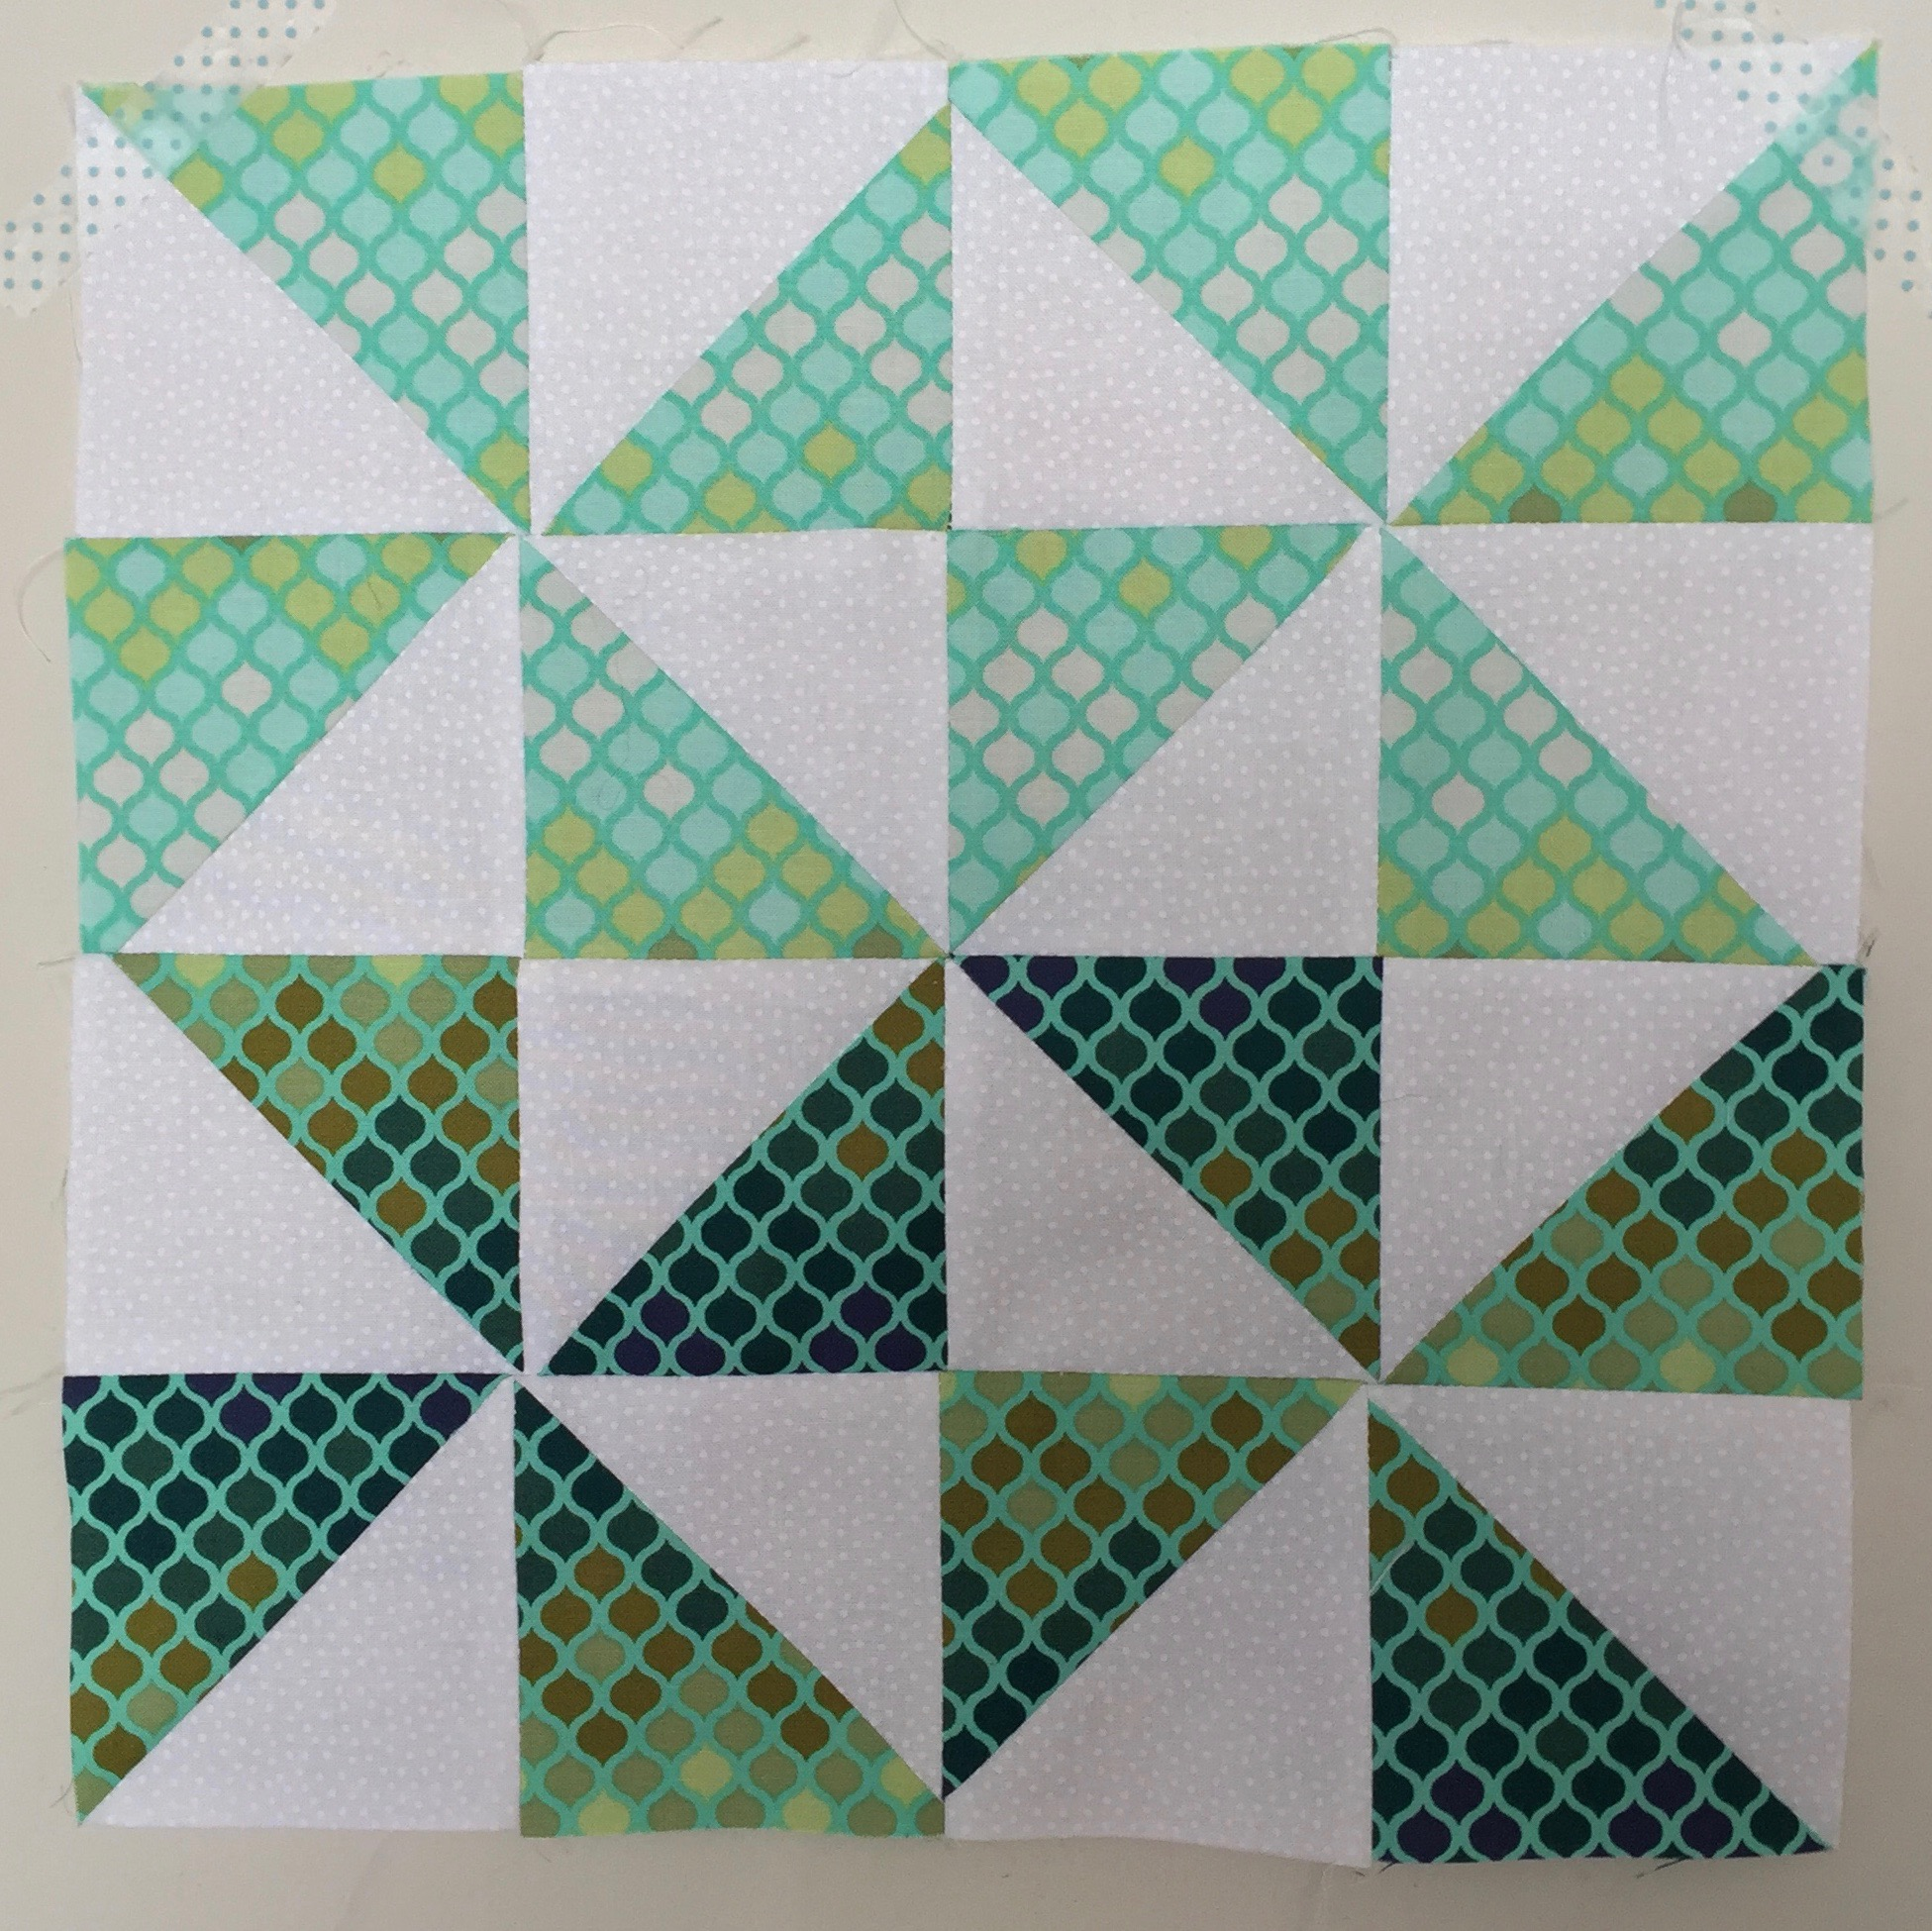 Broken Dishes (variation) Half Square Triangle Quilt Block